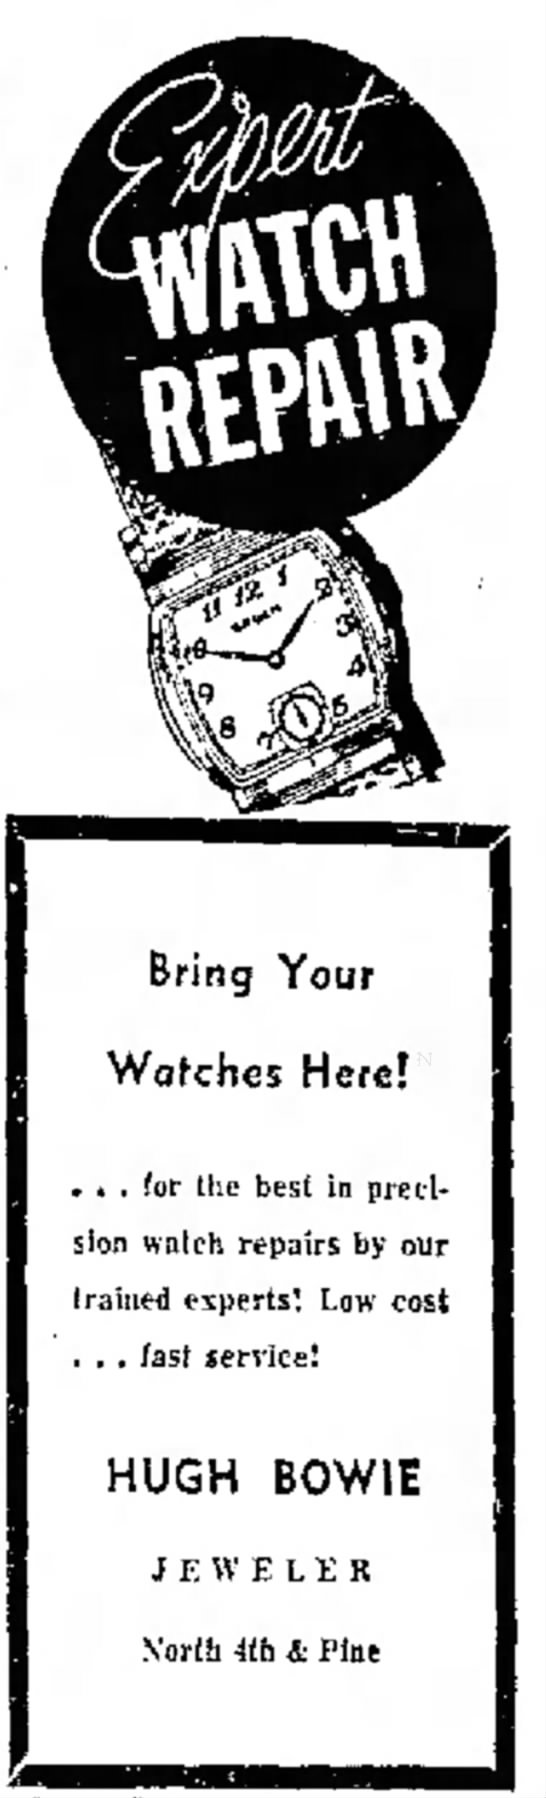 Watch Repair Experts29 January 1956 - both Bring Your Watches Here! . . . for the...